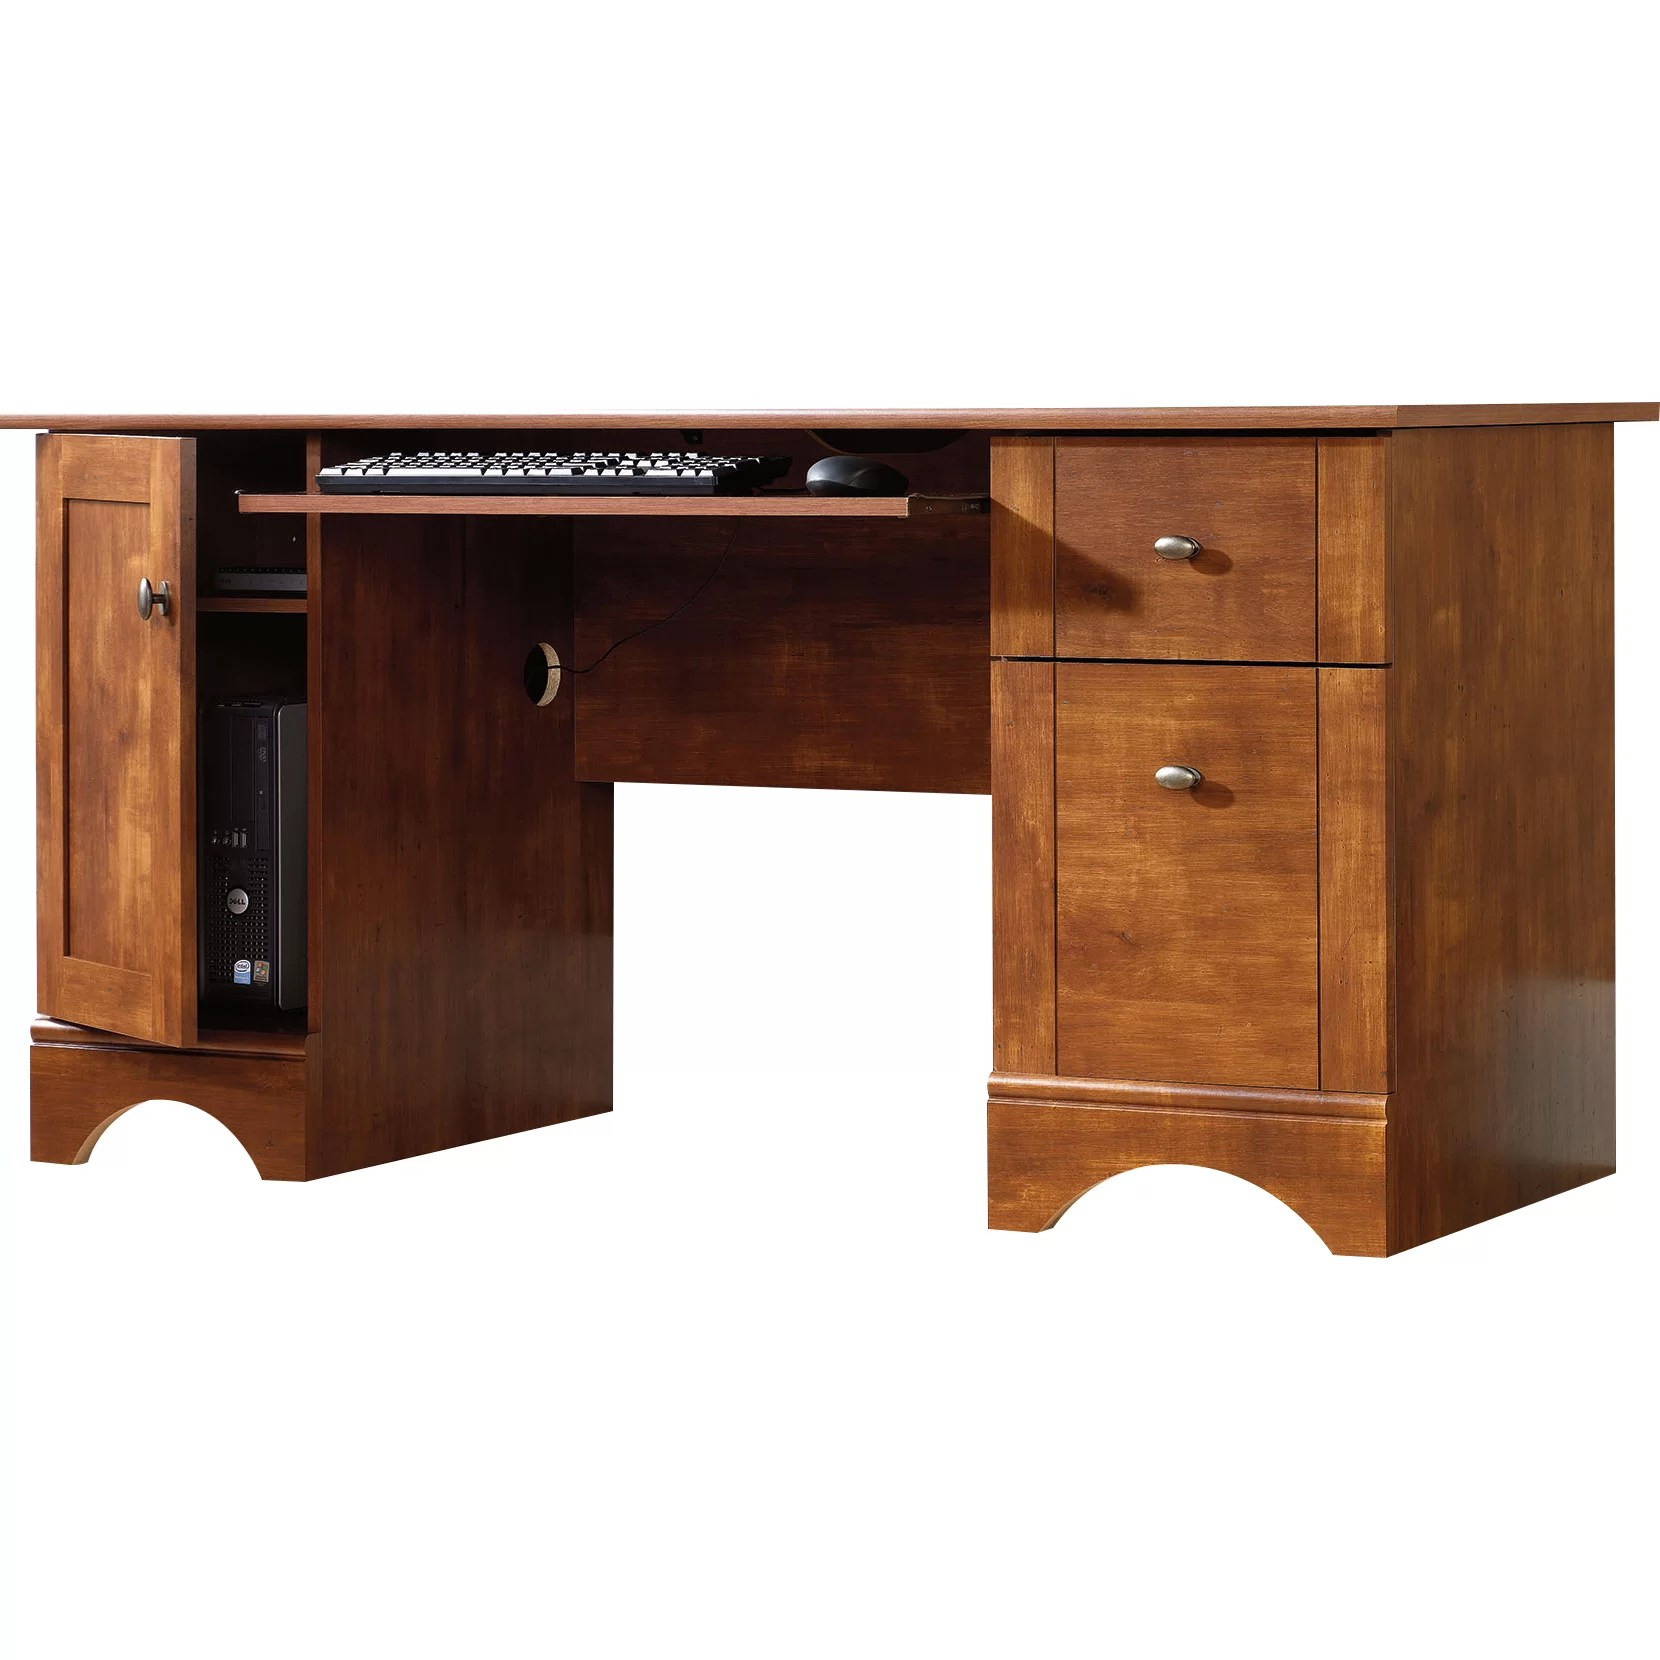 Sauder Computer Desk with 2 Storage Drawers  Reviews